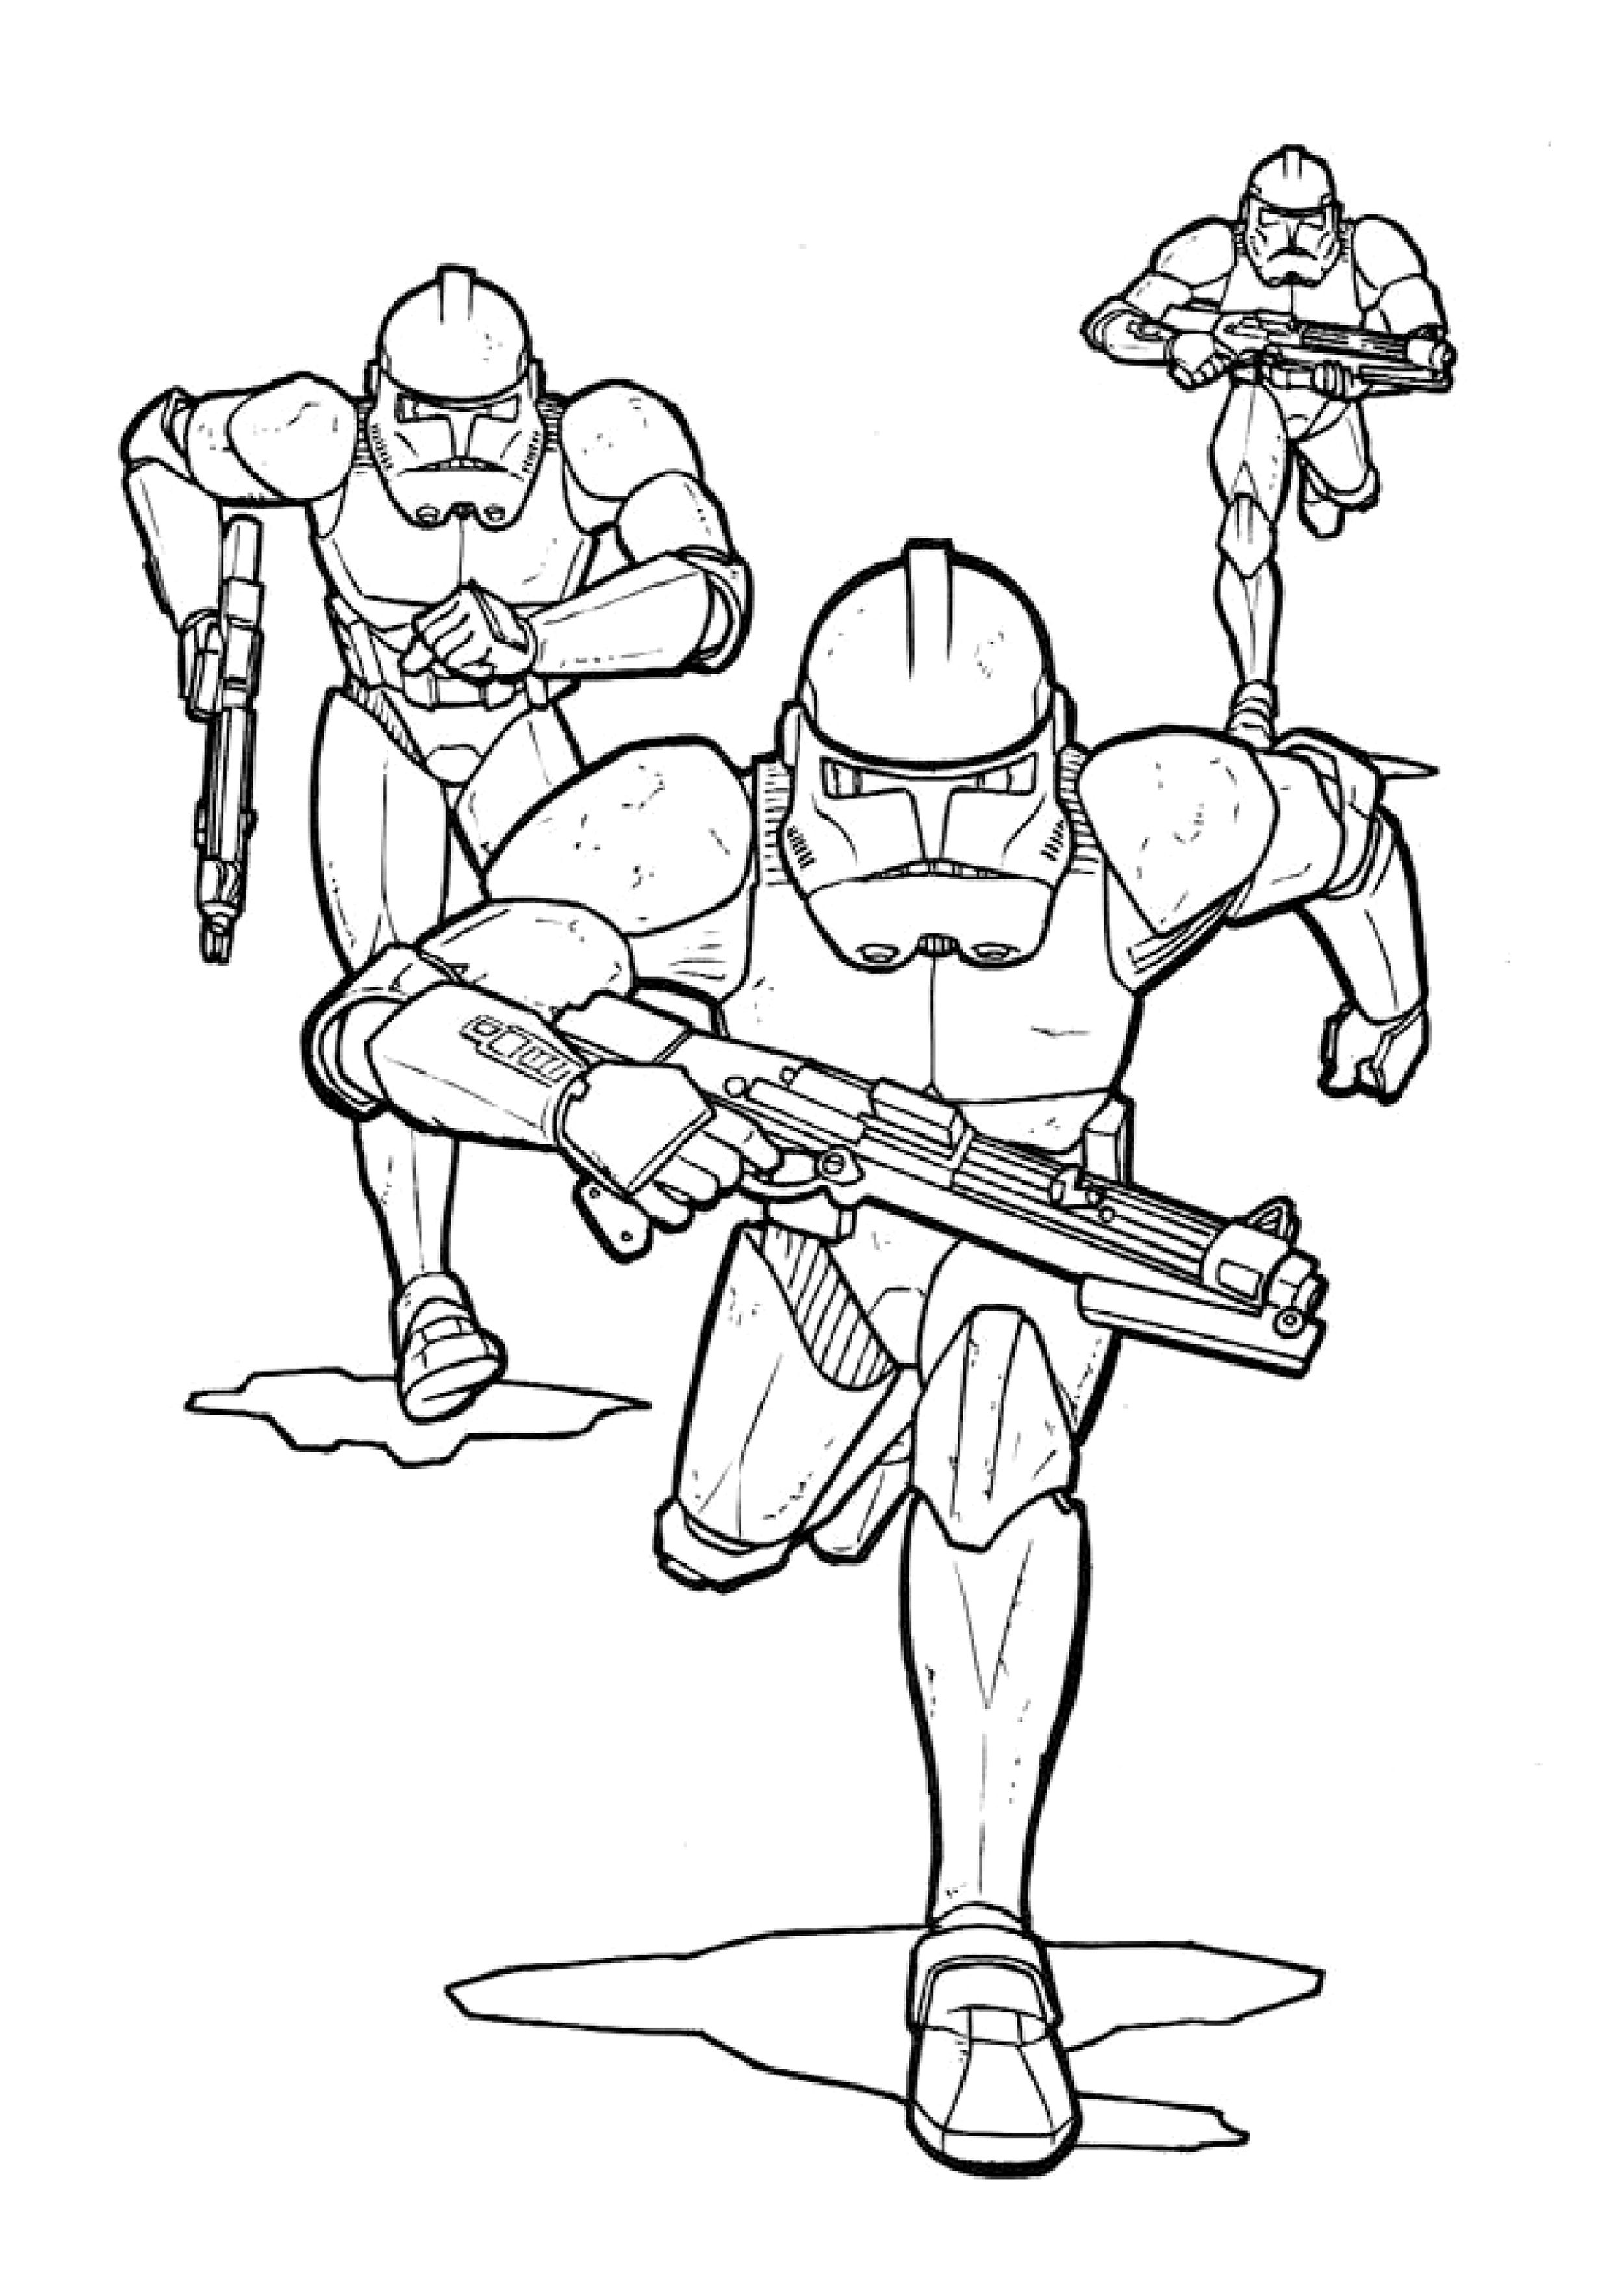 Storm Trooper Coloring Page And Stormtrooper Pages Cute Kid Stuff